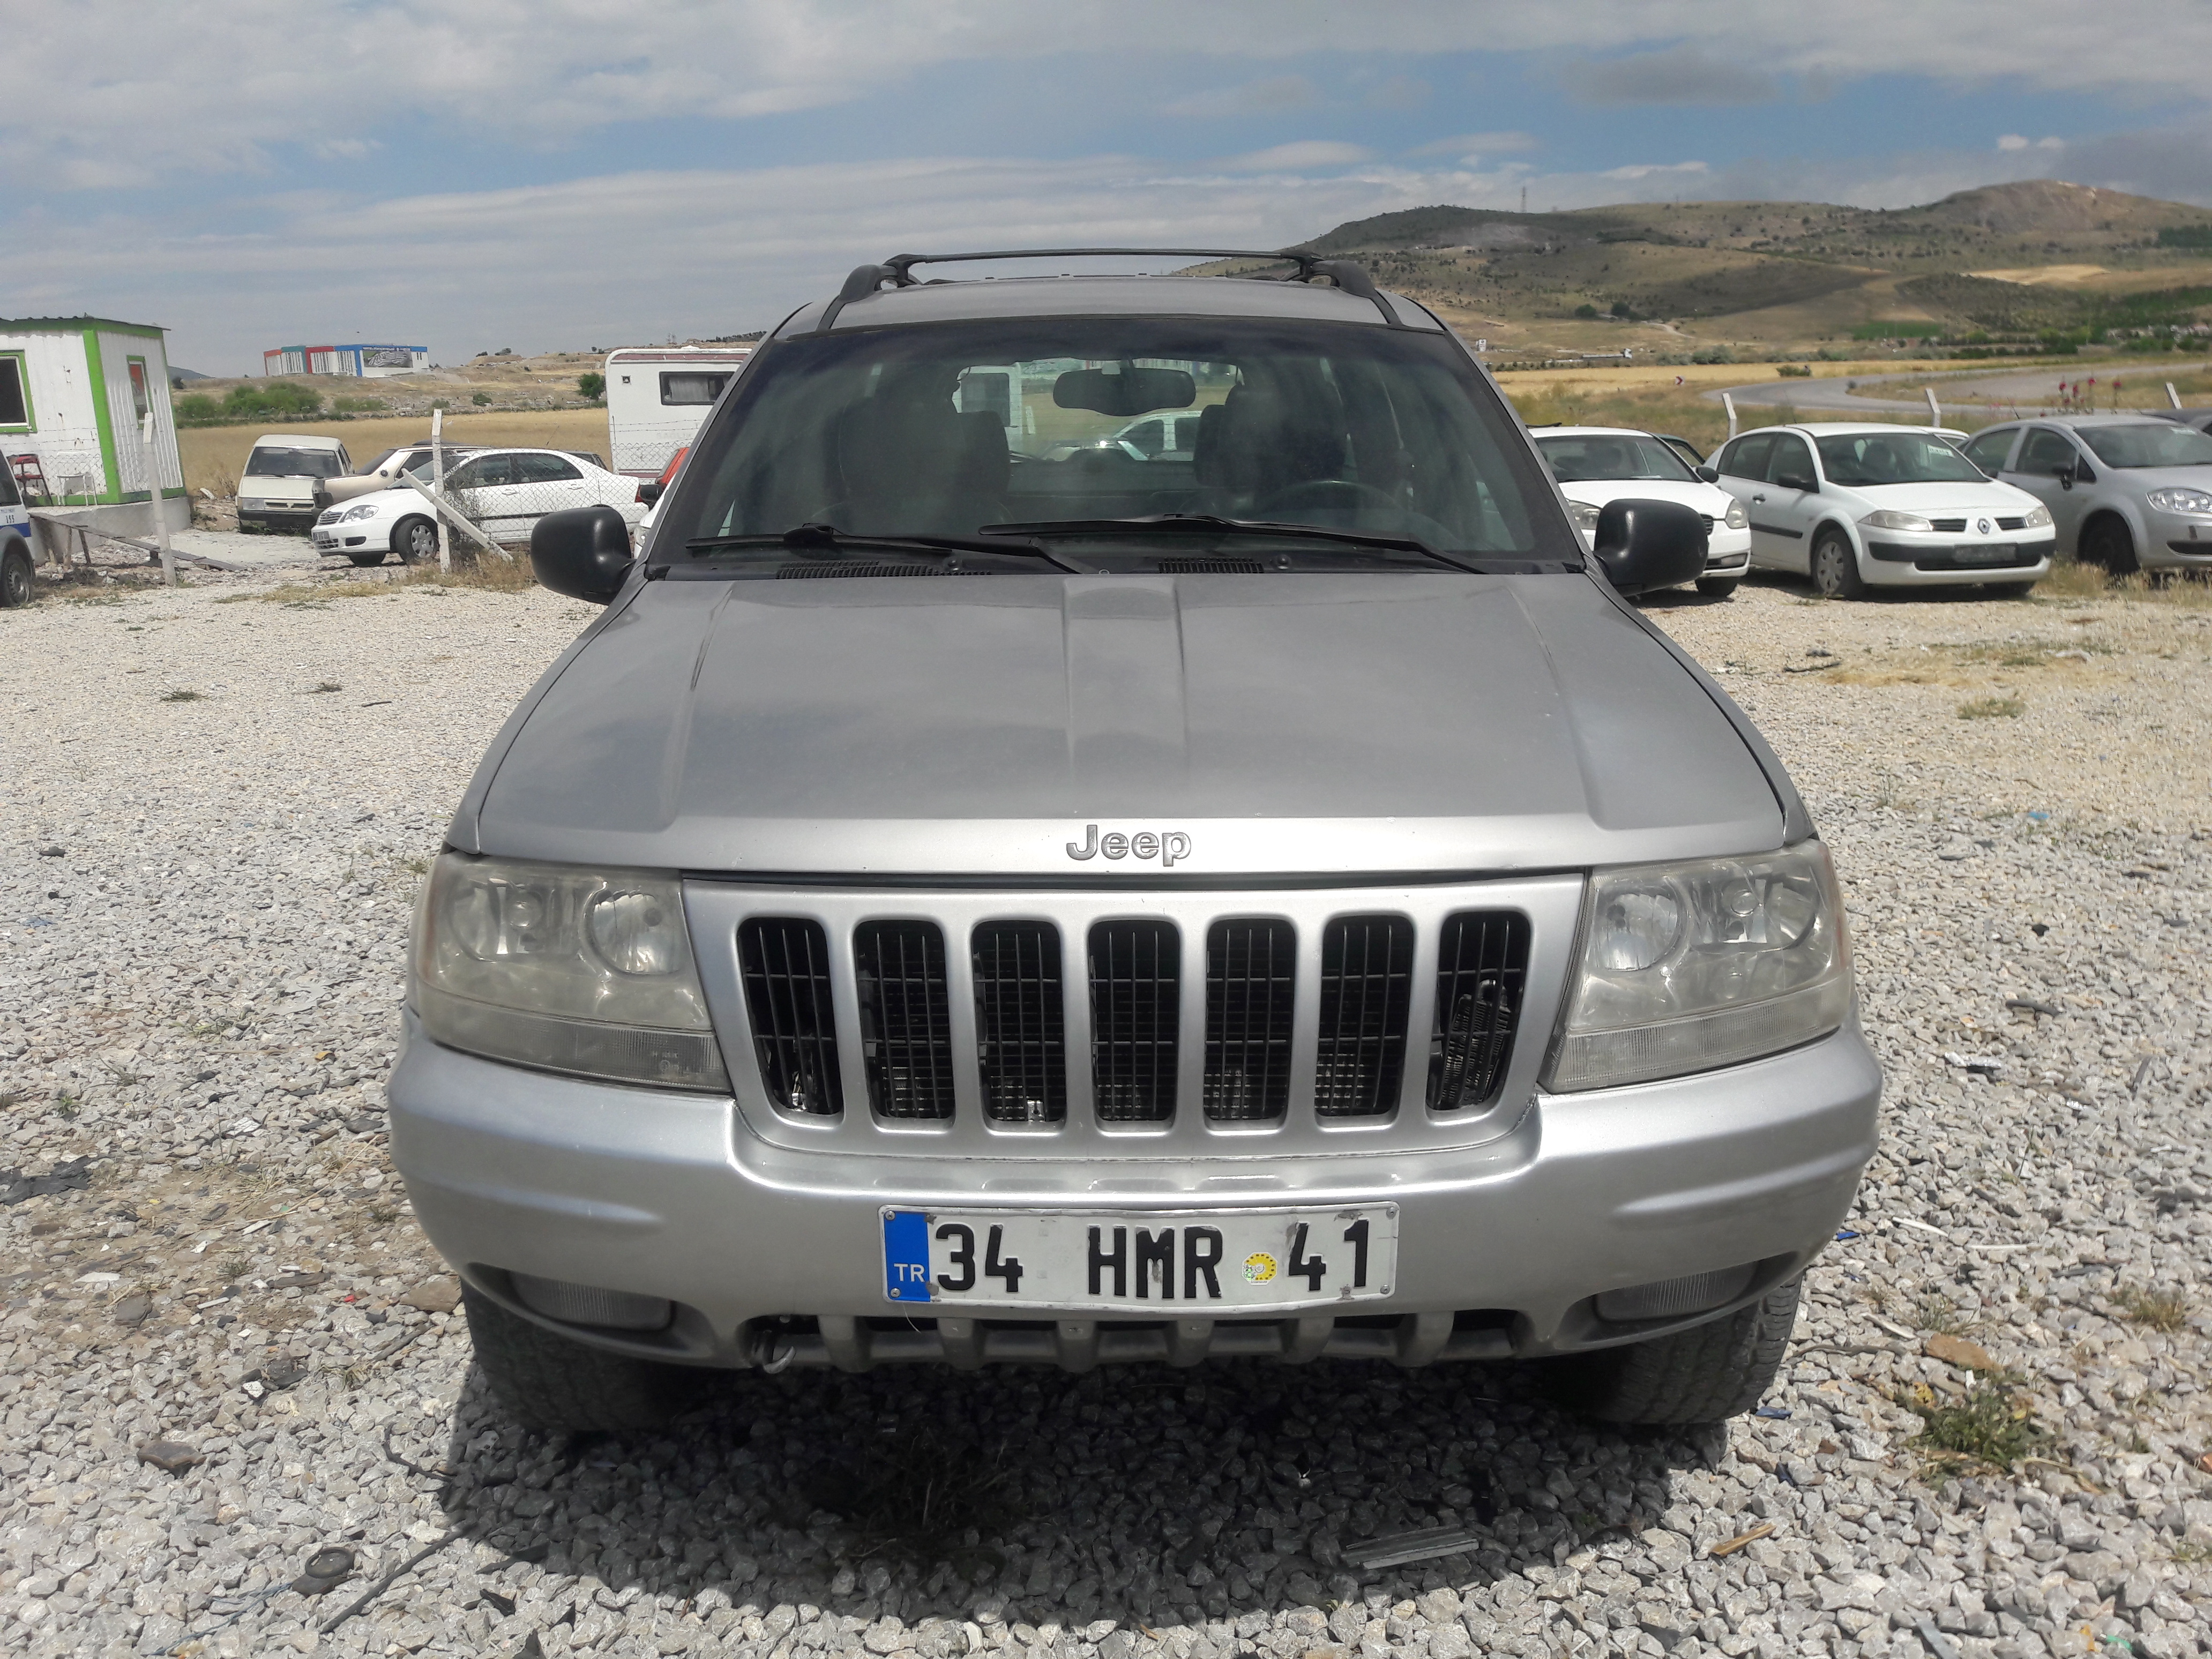 Jeep Grand Cherokee 3.1TD 2000 Model